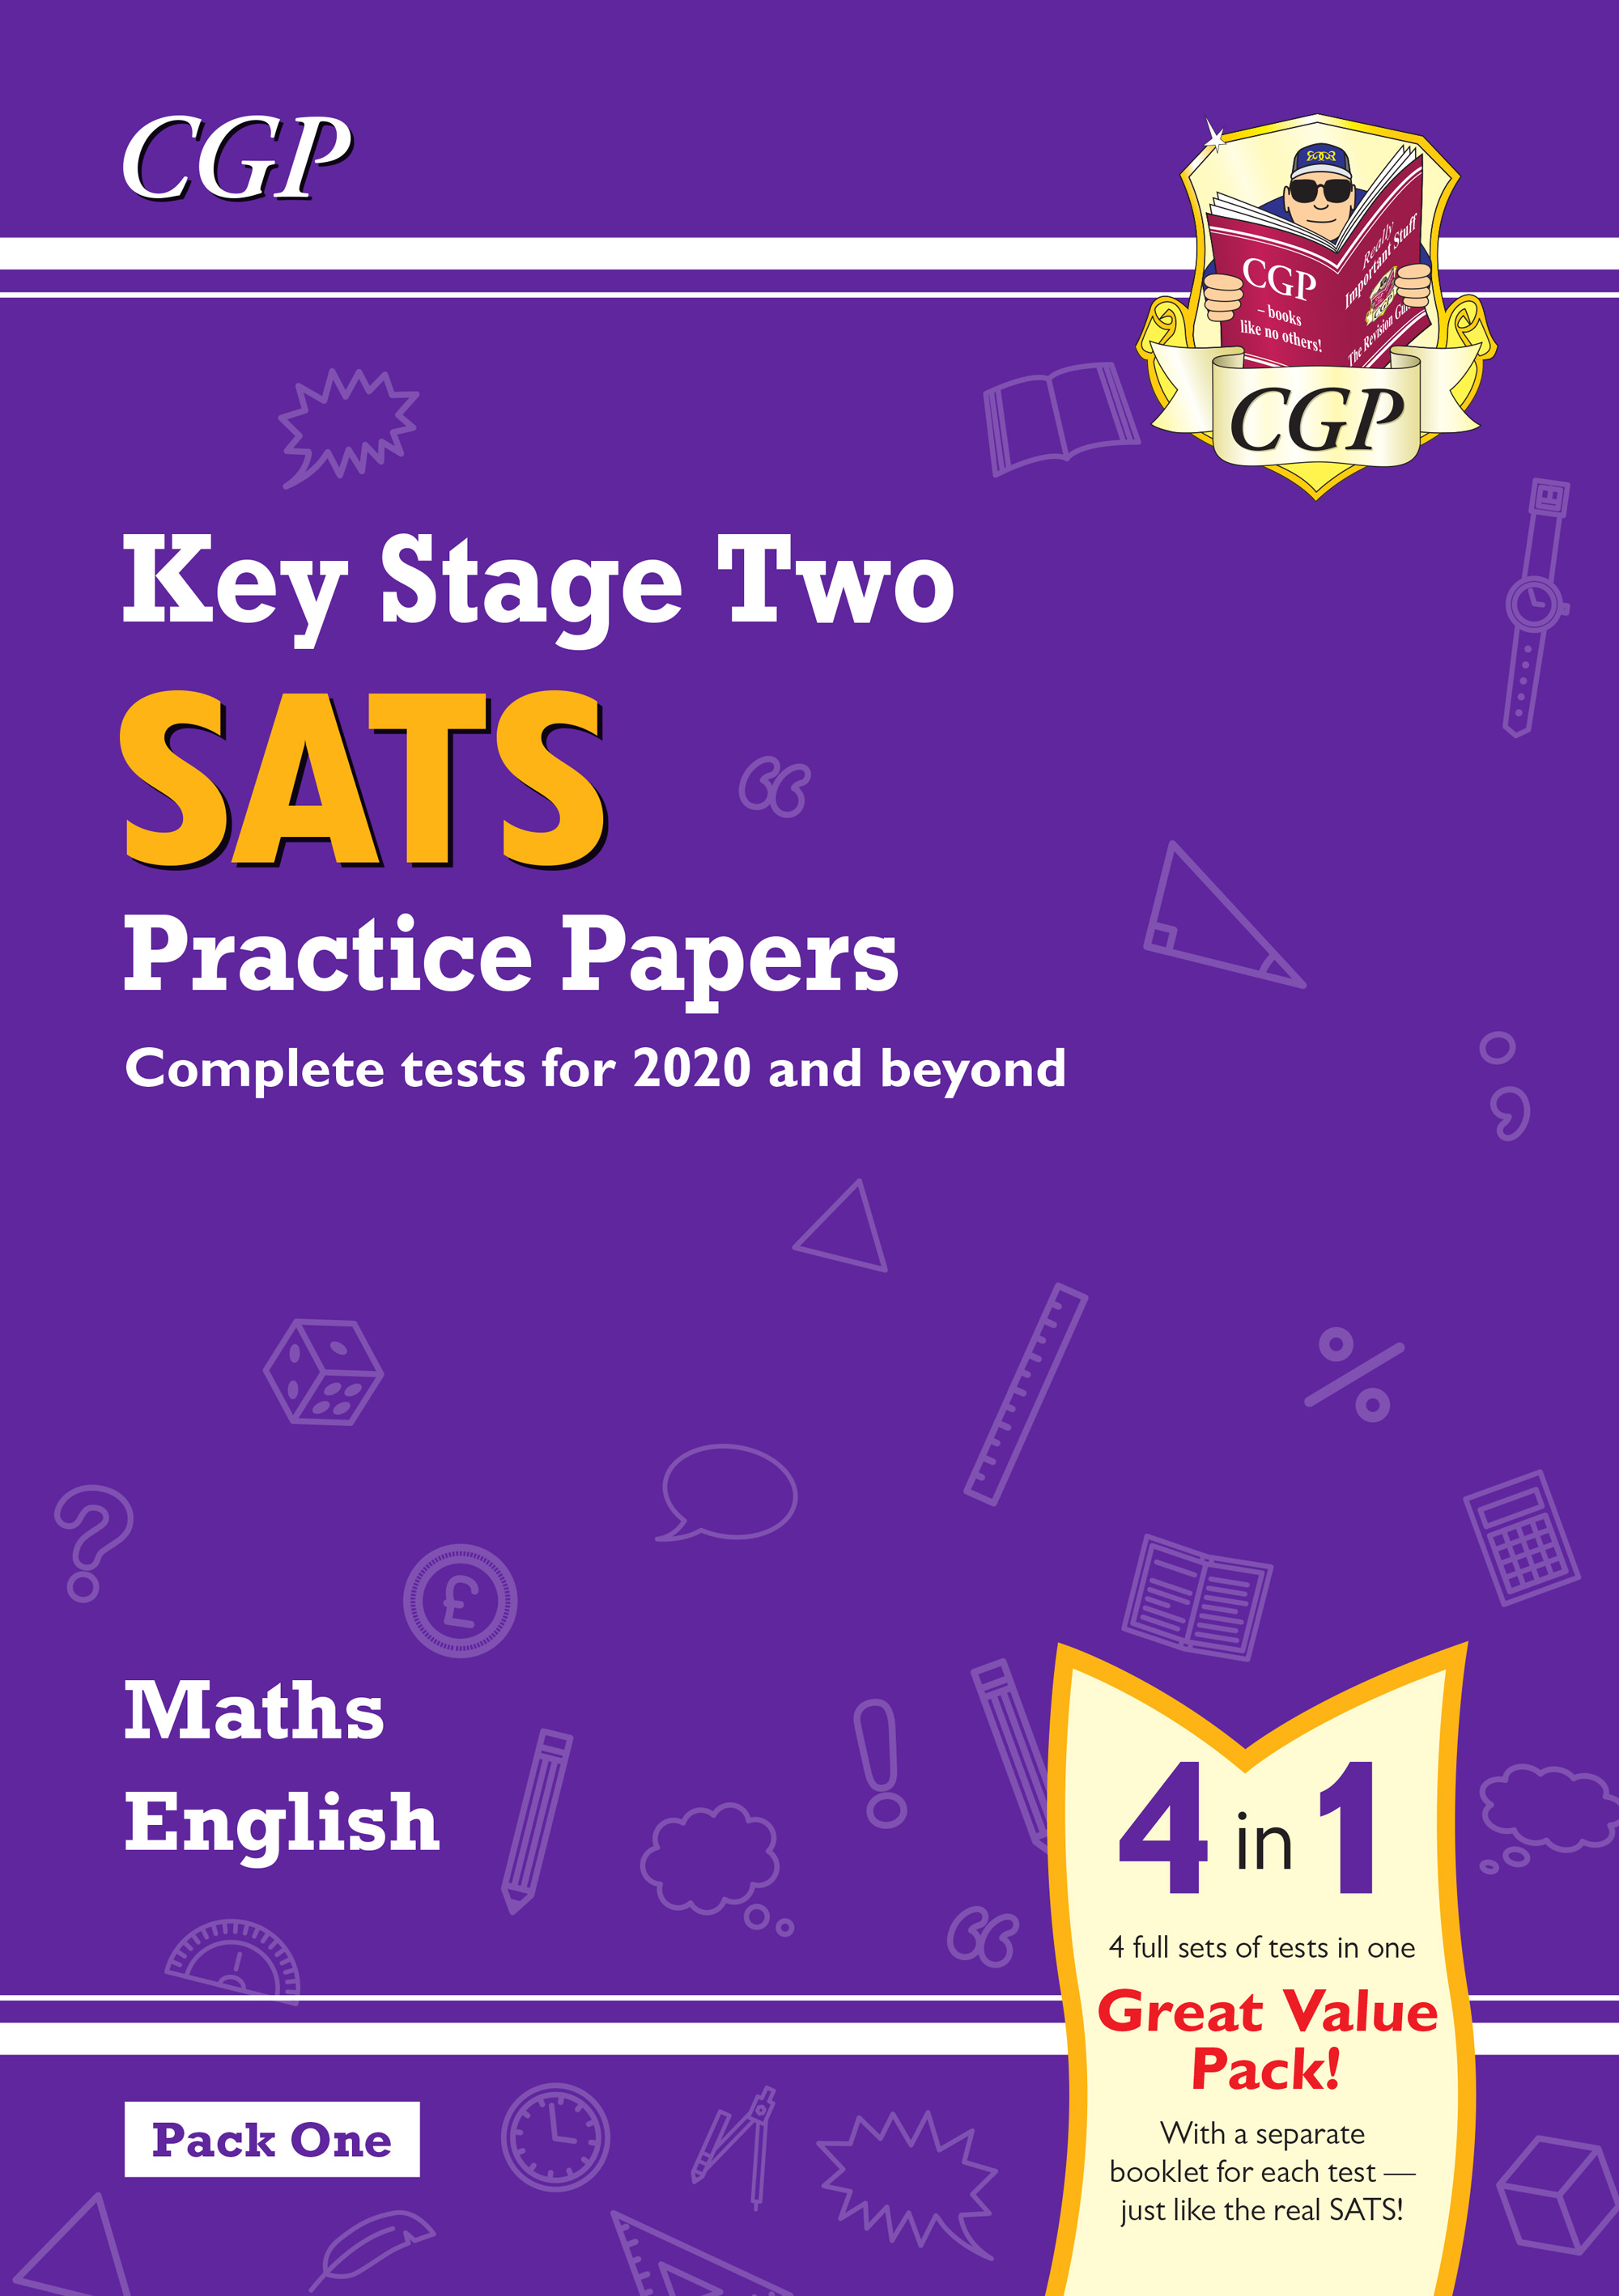 MEB24 - New KS2 Maths and English SATS Practice Papers Pack (for the 2020 tests) - Pack 1